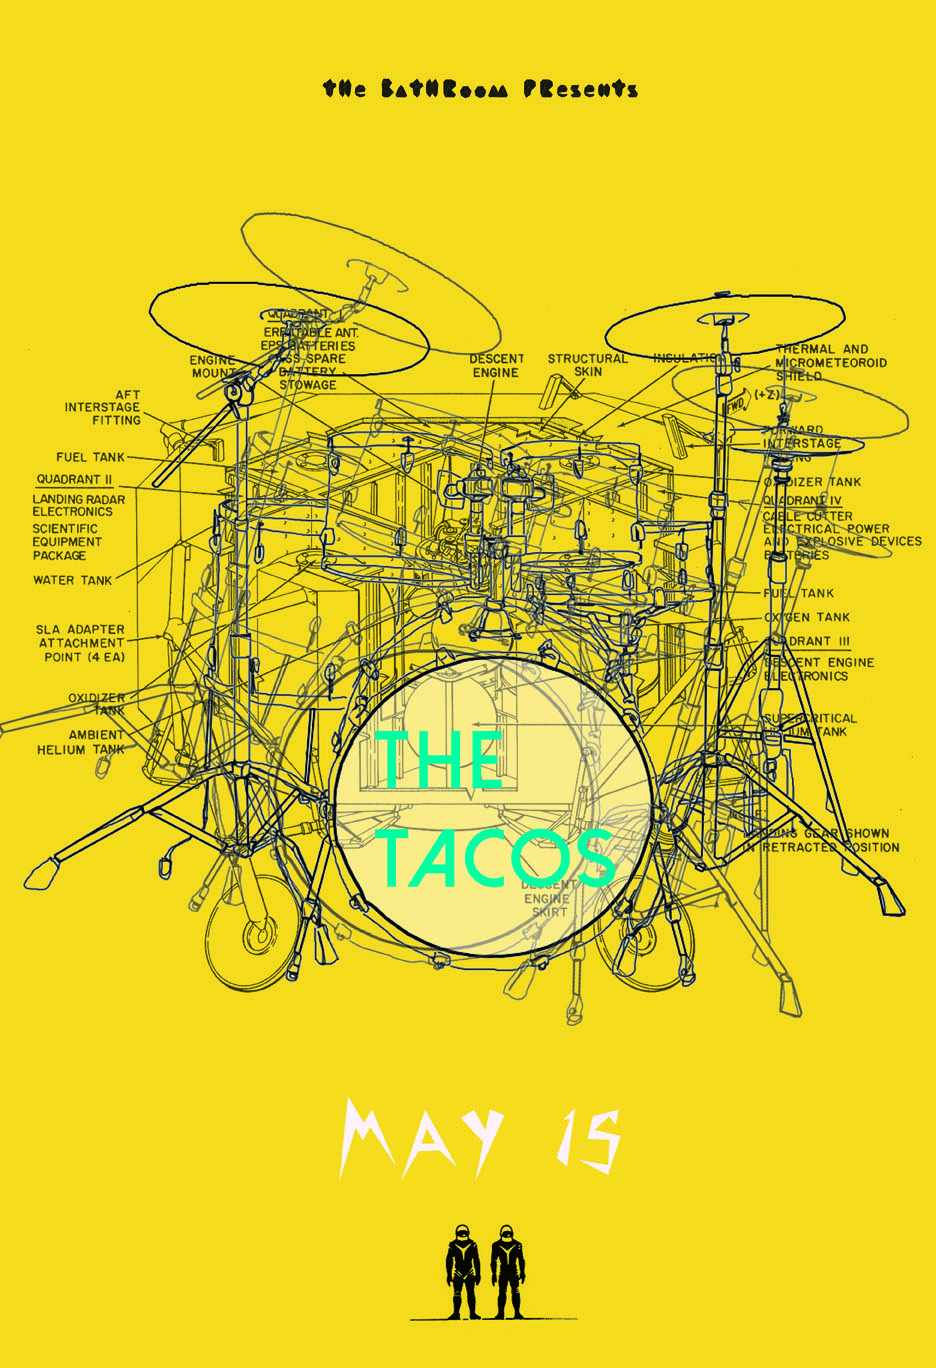 BATHROOM SHOW_The Tacos_13inx19in Poster_or variable_SANTIAGO.jpg